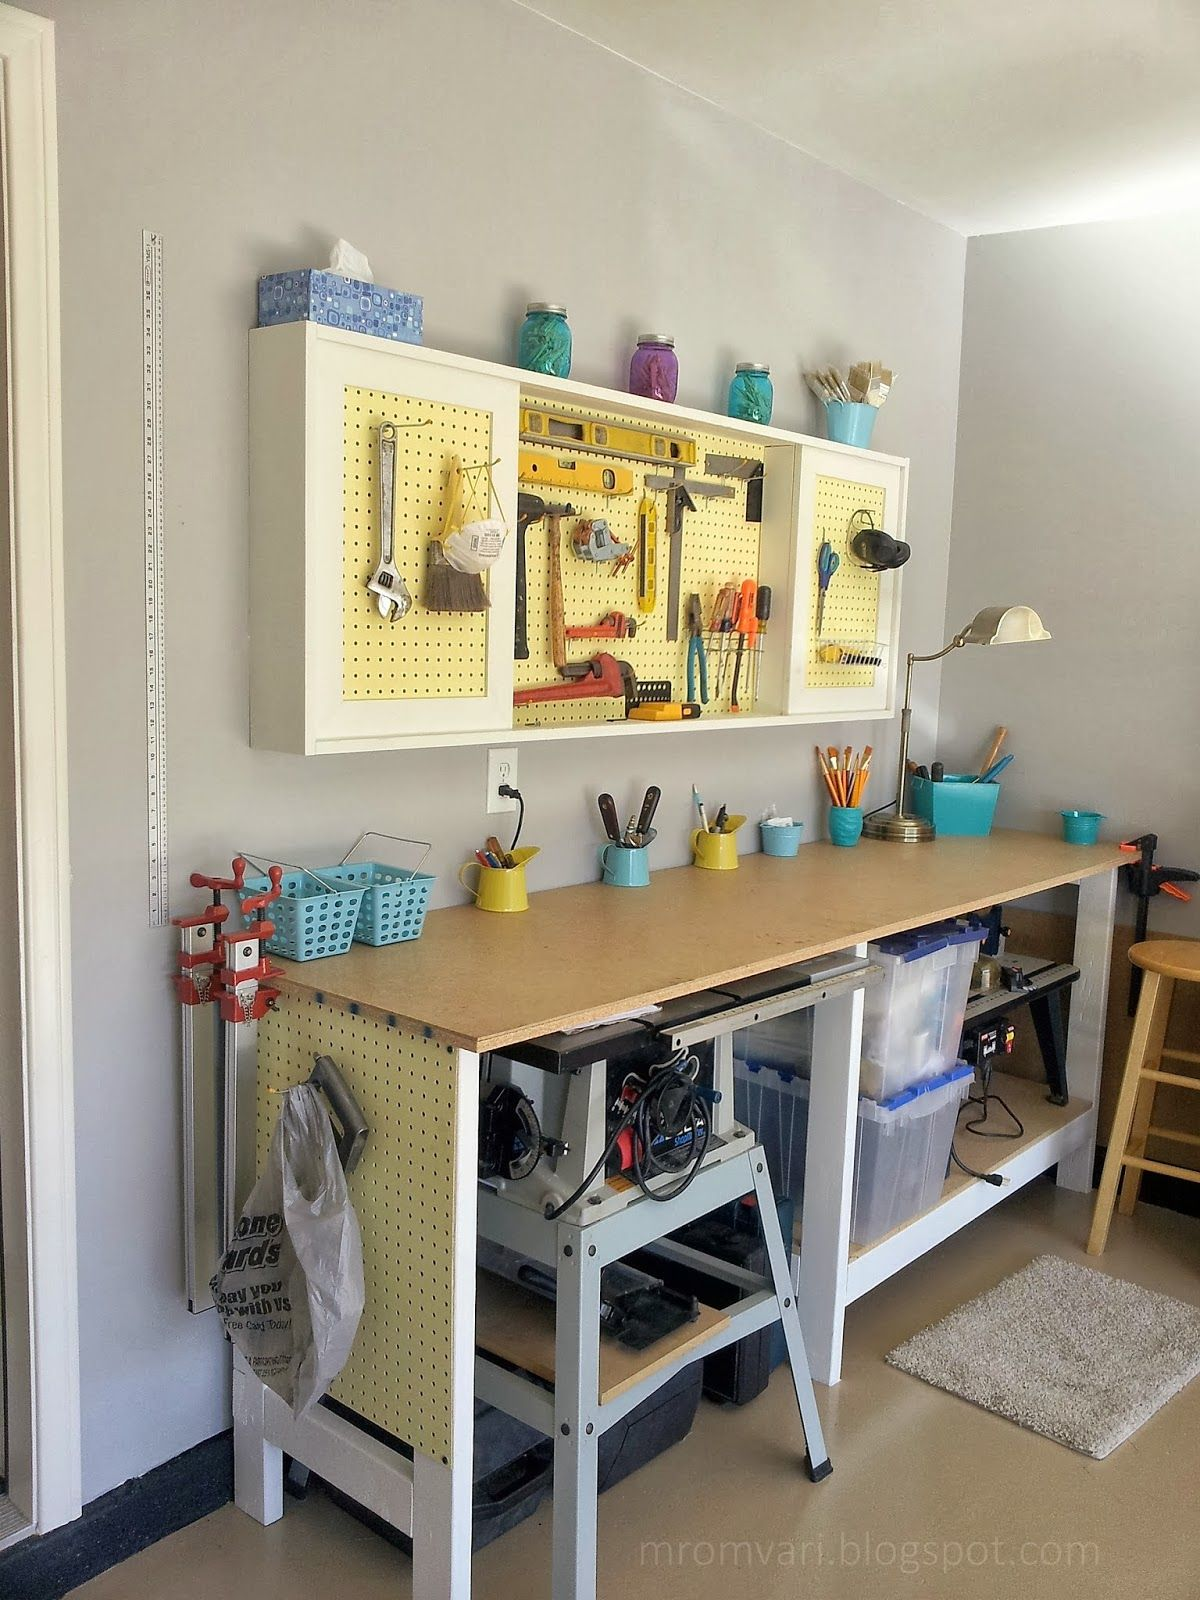 Garage Workbench And Storage Diy Cupcake Holders Garage Organization Garage